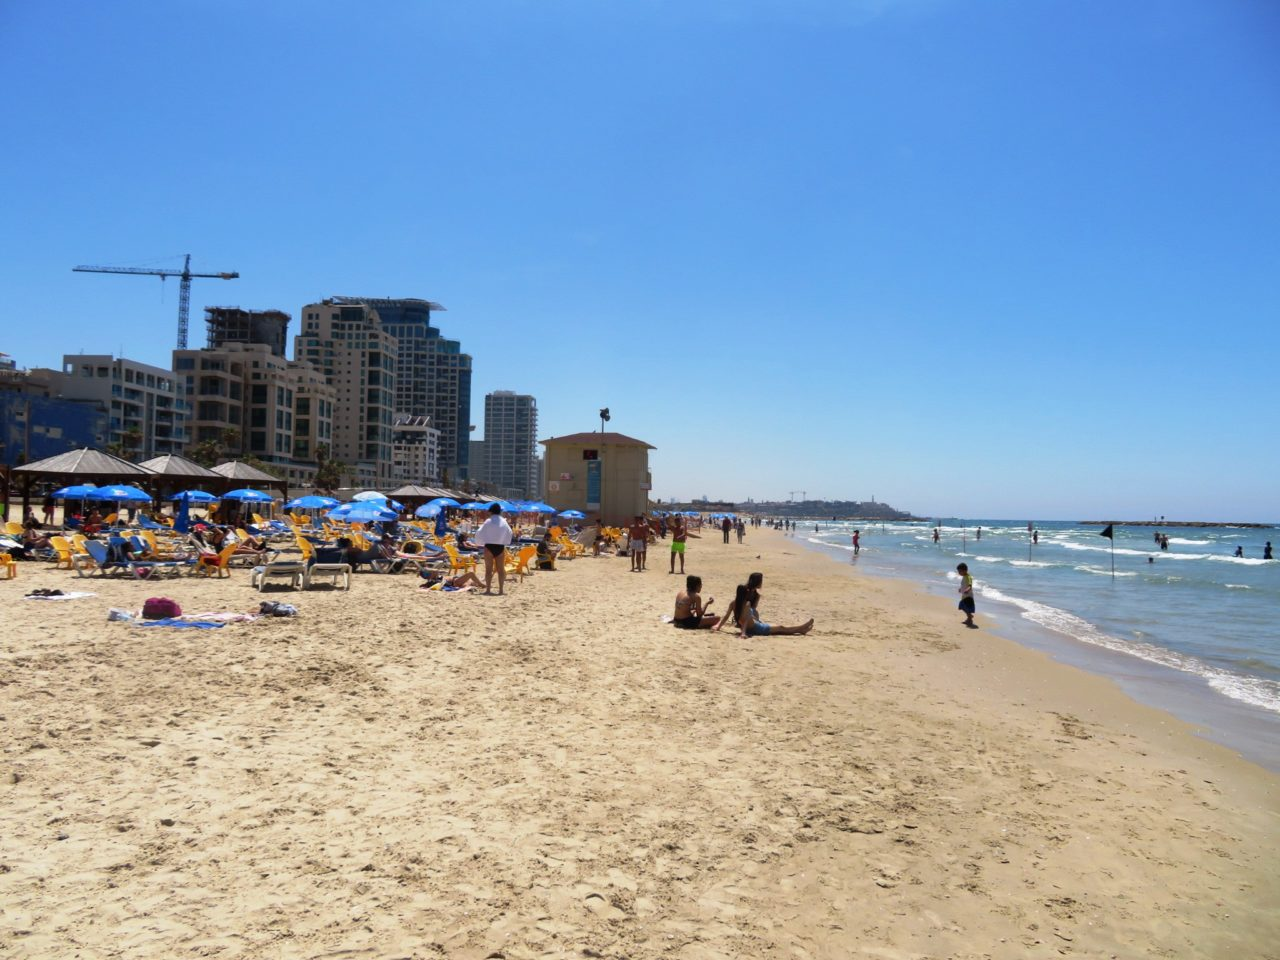 Vacationing in Israel ... The Tel Aviv Beach